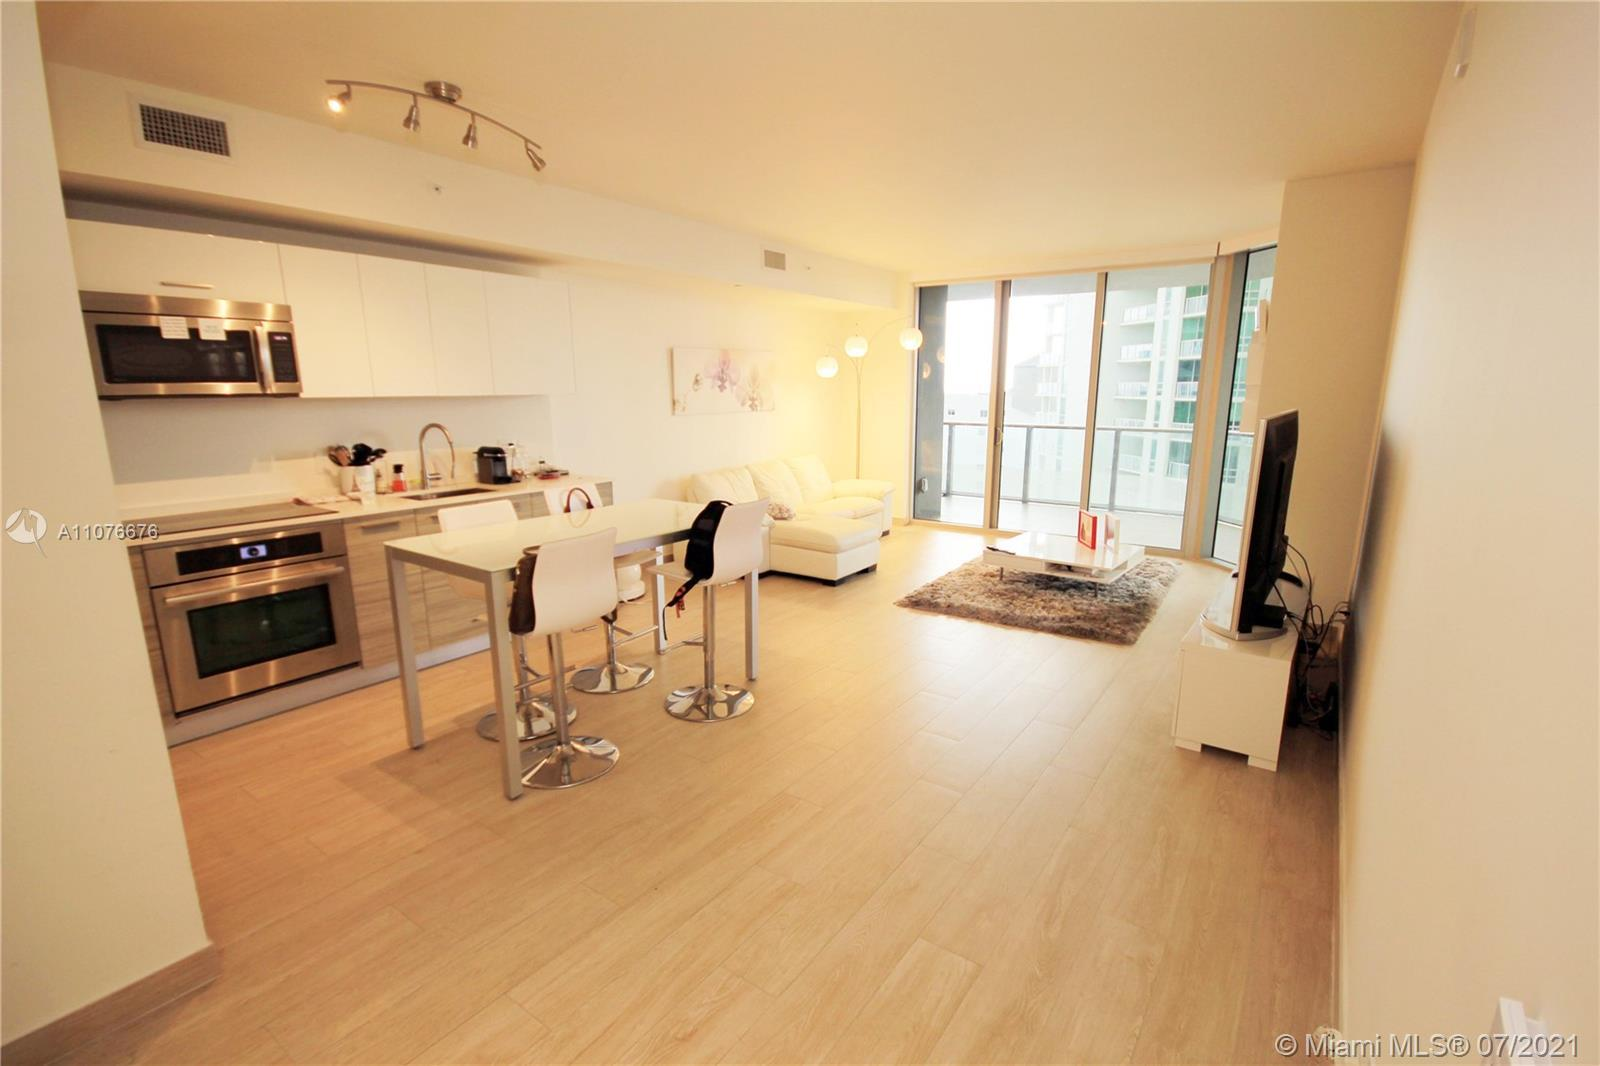 SPACIOUS AND CLEAR UNIT IN A LUXURY BUILDING WITH ALL AMENITIES. LARGE BALCONY ACCESSIBLE FROM LIVIN